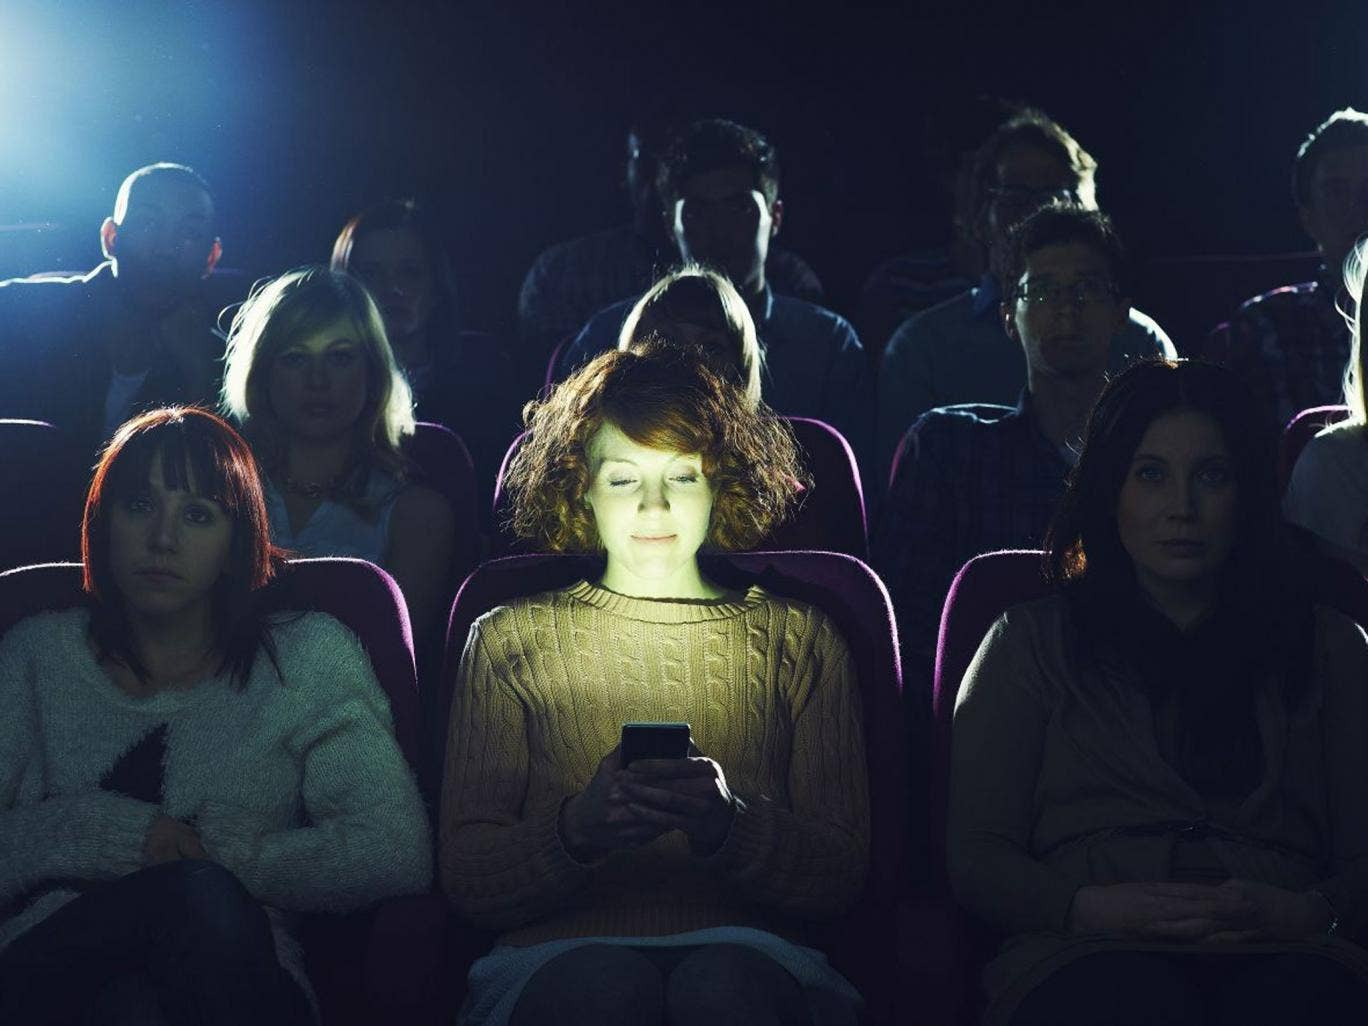 Cinema-goers may now be asked to keep their phones on, as a new app is trialed